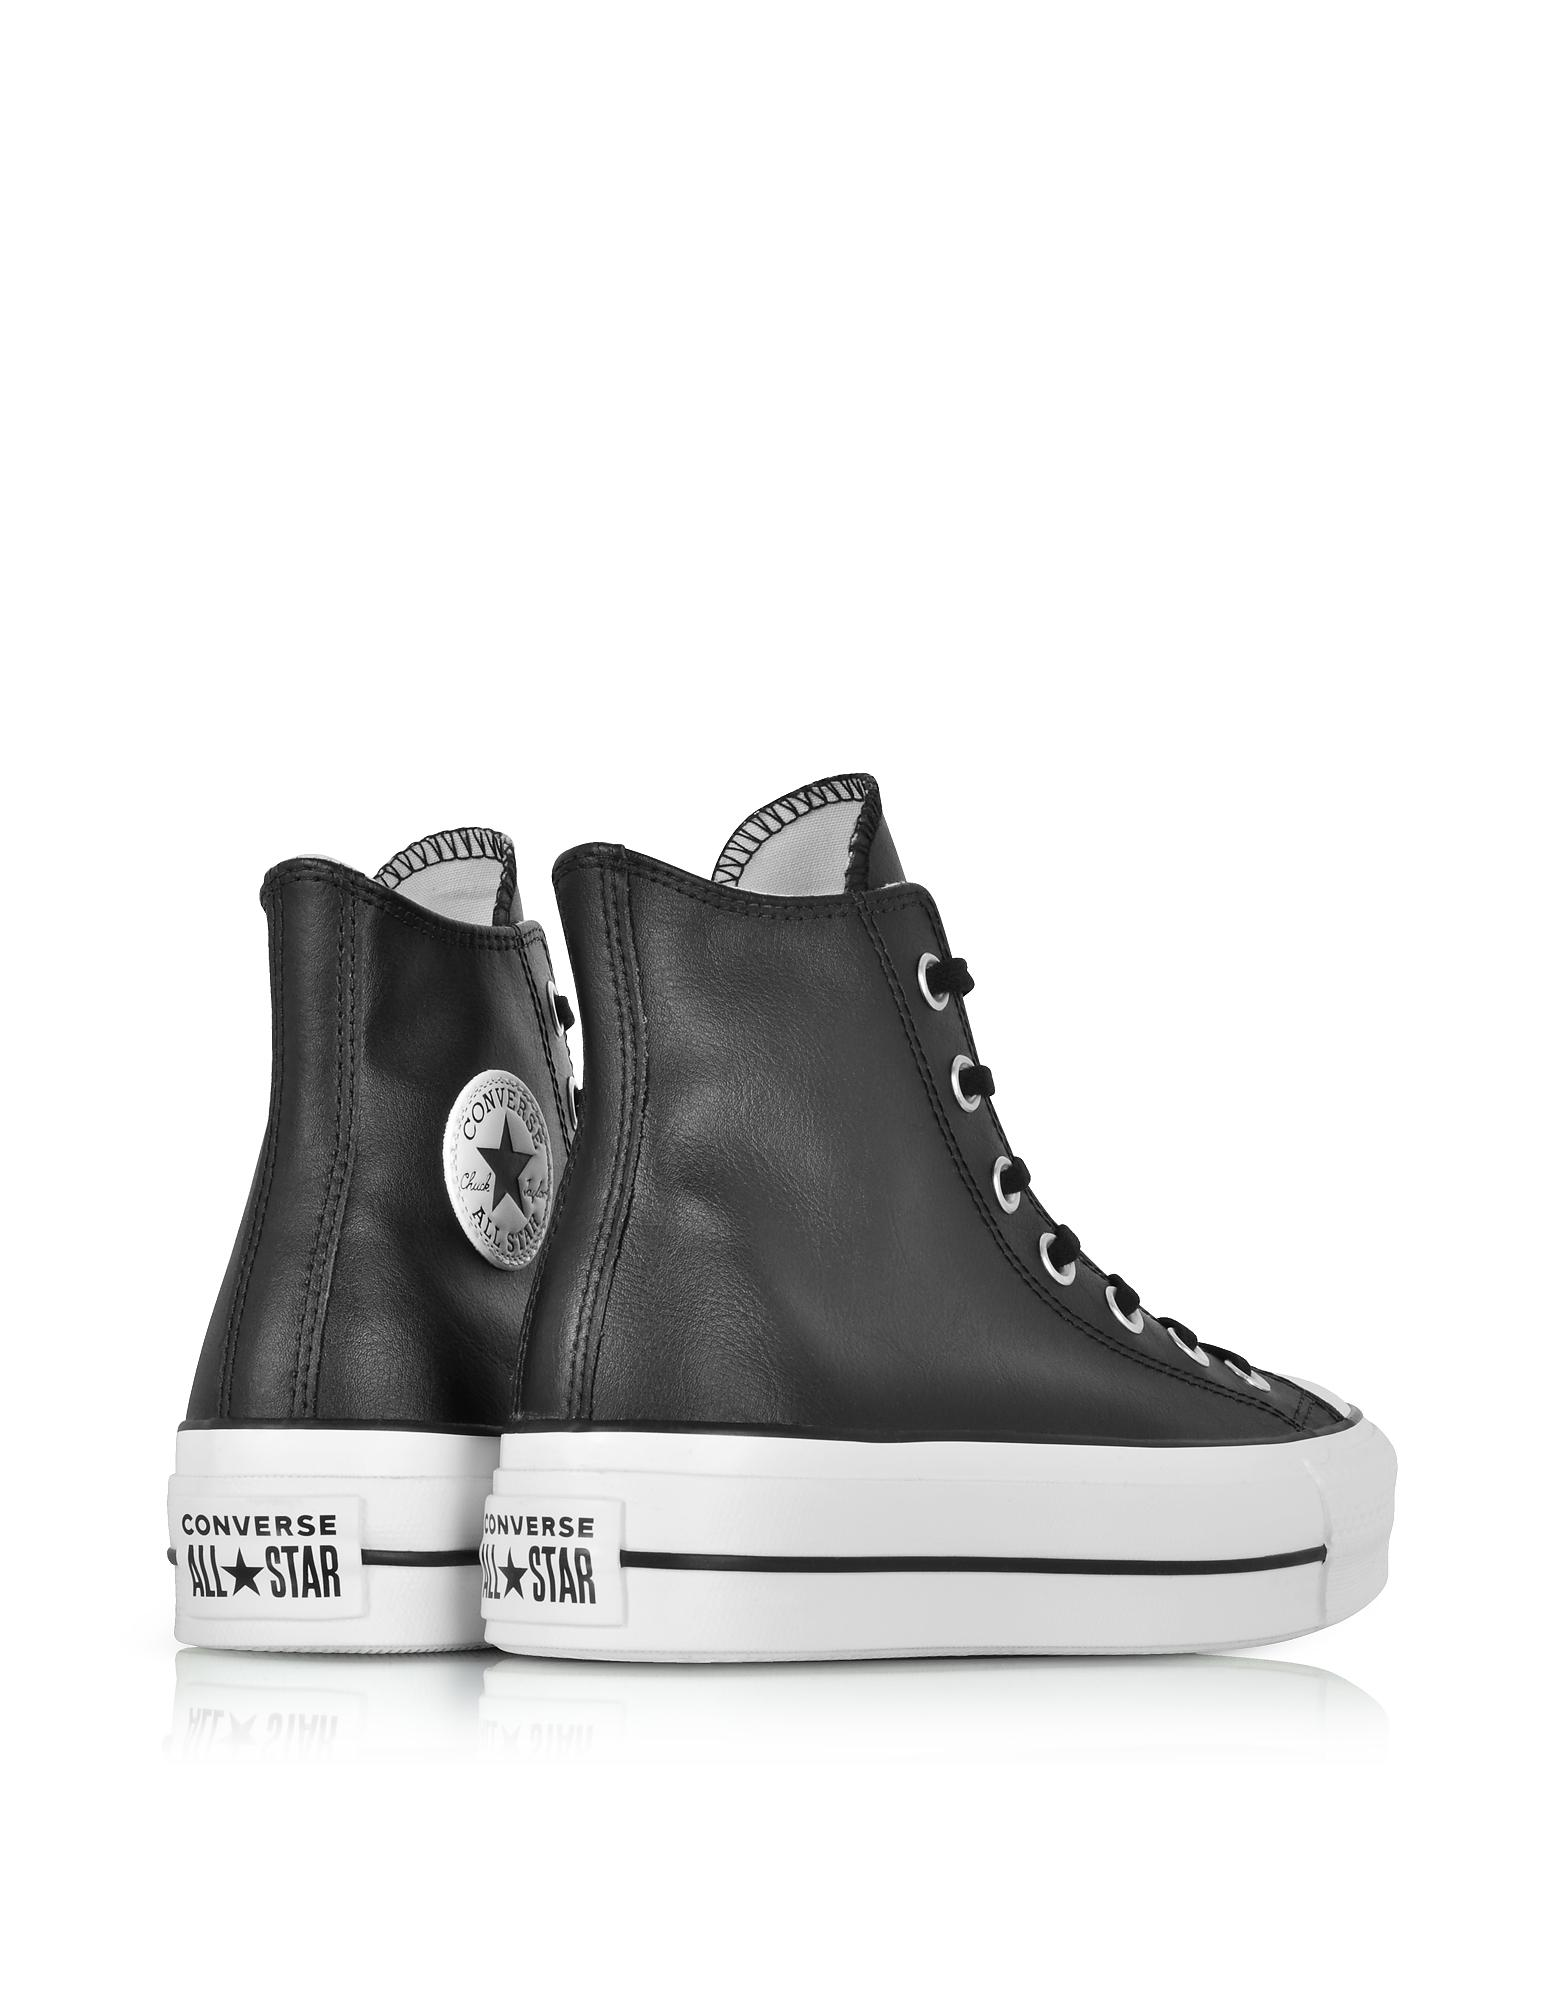 Lyst - Converse Chuck Taylor All Star Lift Clean Black Leather High ... b164c7886